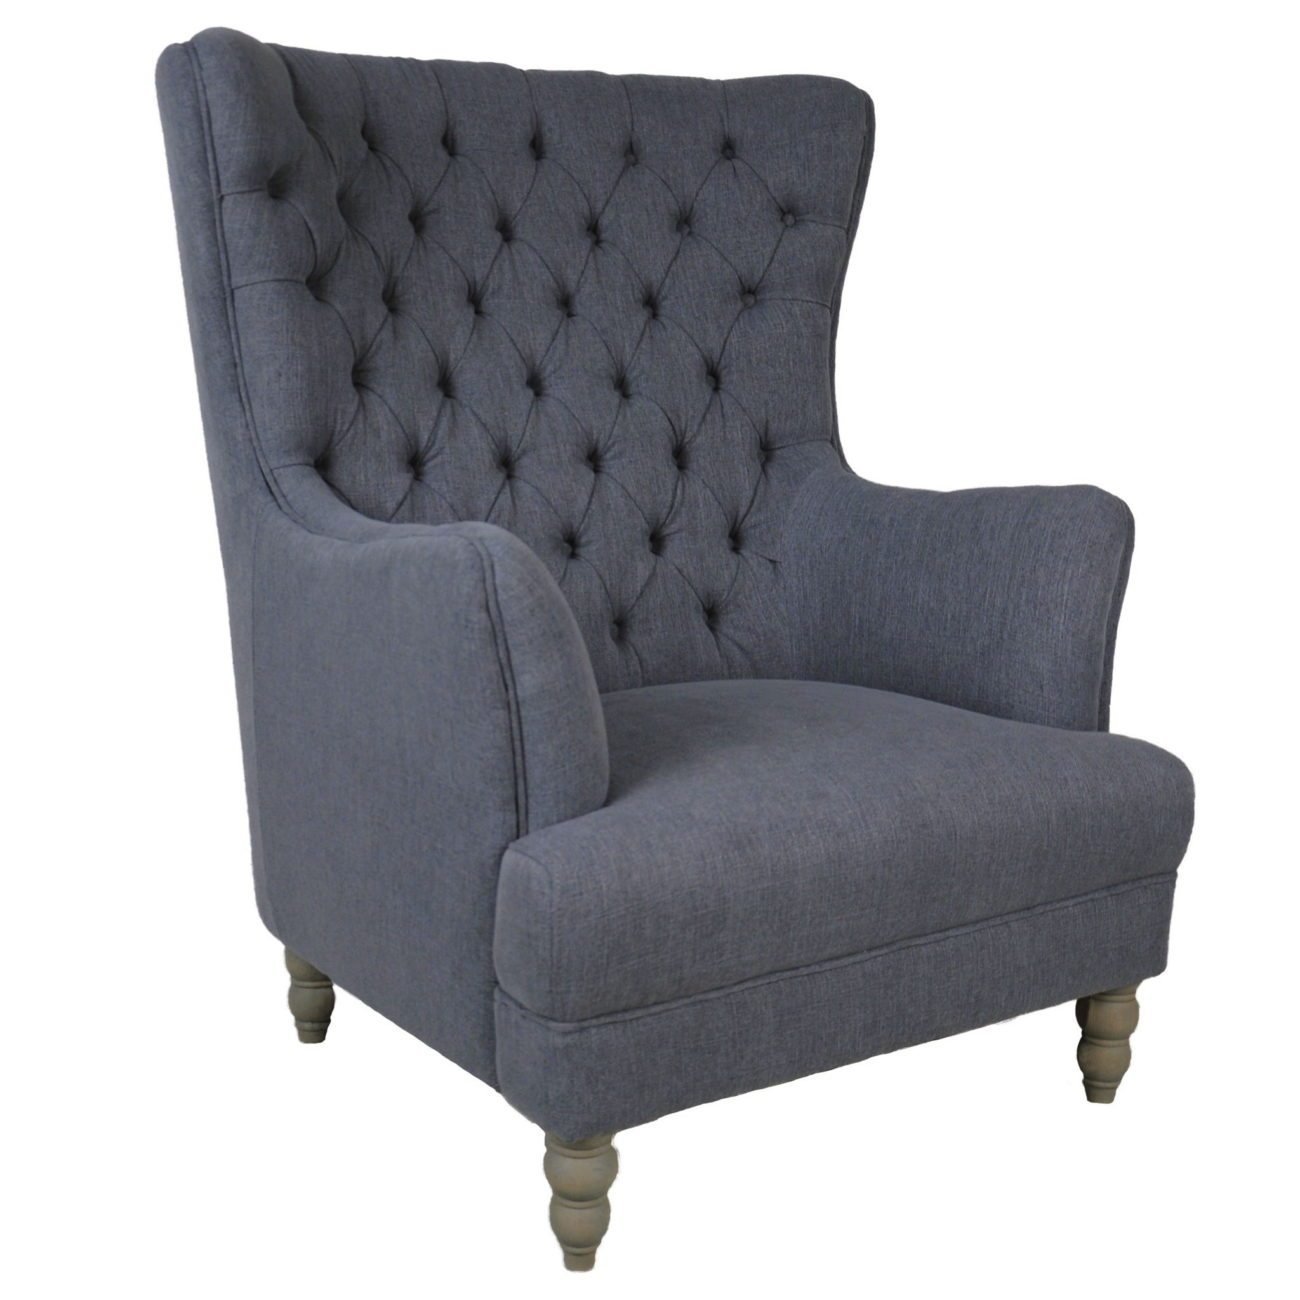 Stockwell-Button-Tufted-Oversized-Wing-Back-Club-Chair.